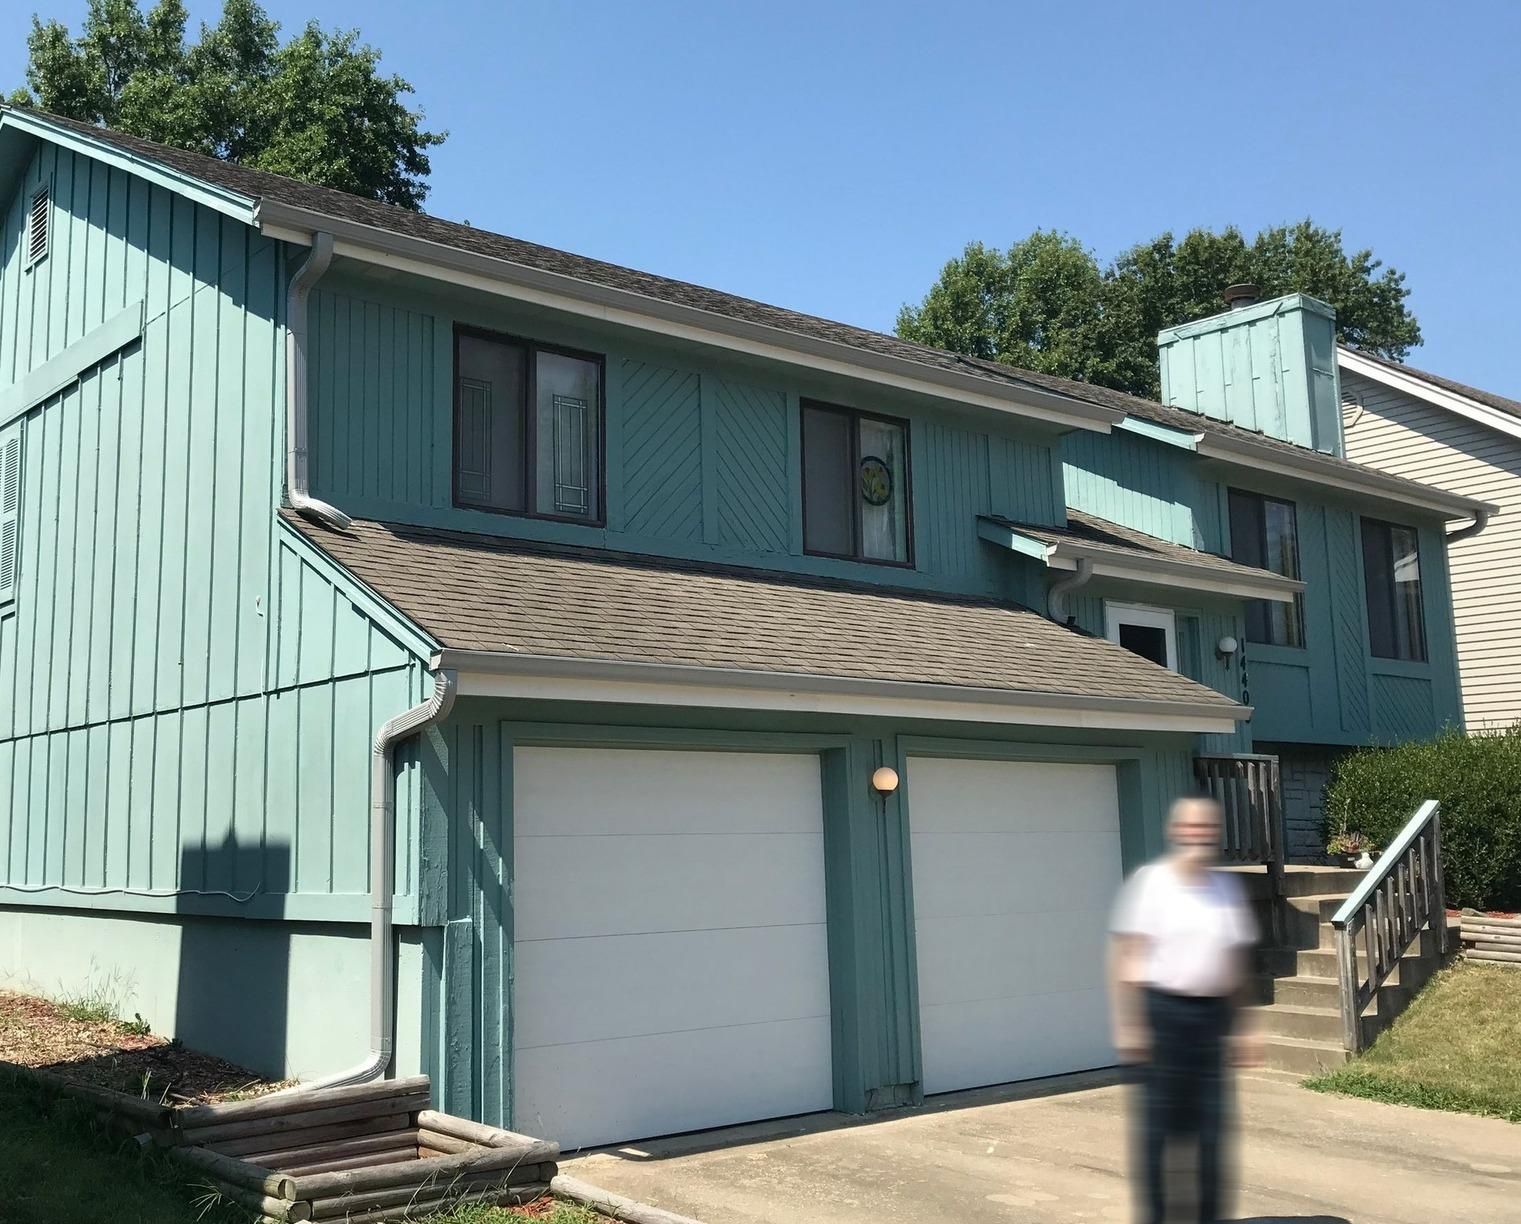 Siding Repair and Exterior Painting for a Home in Grandview, MO - Before Photo